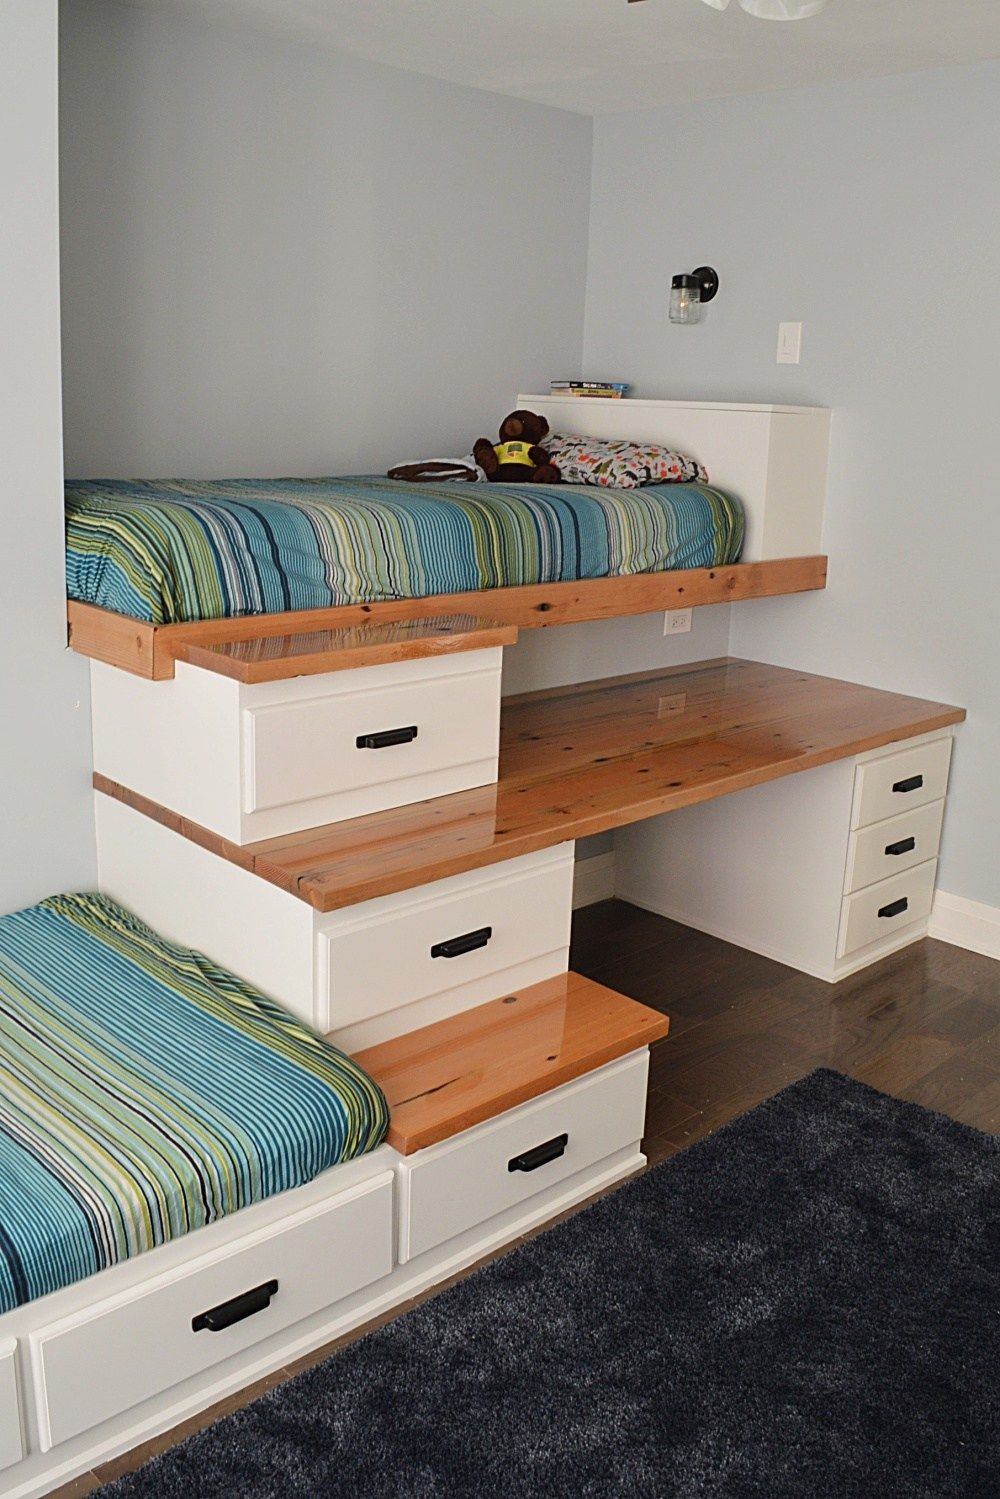 How To Make A Built In Bed With Storage Room Ideas Bedroom Bunk Bed Designs Bedroom Design